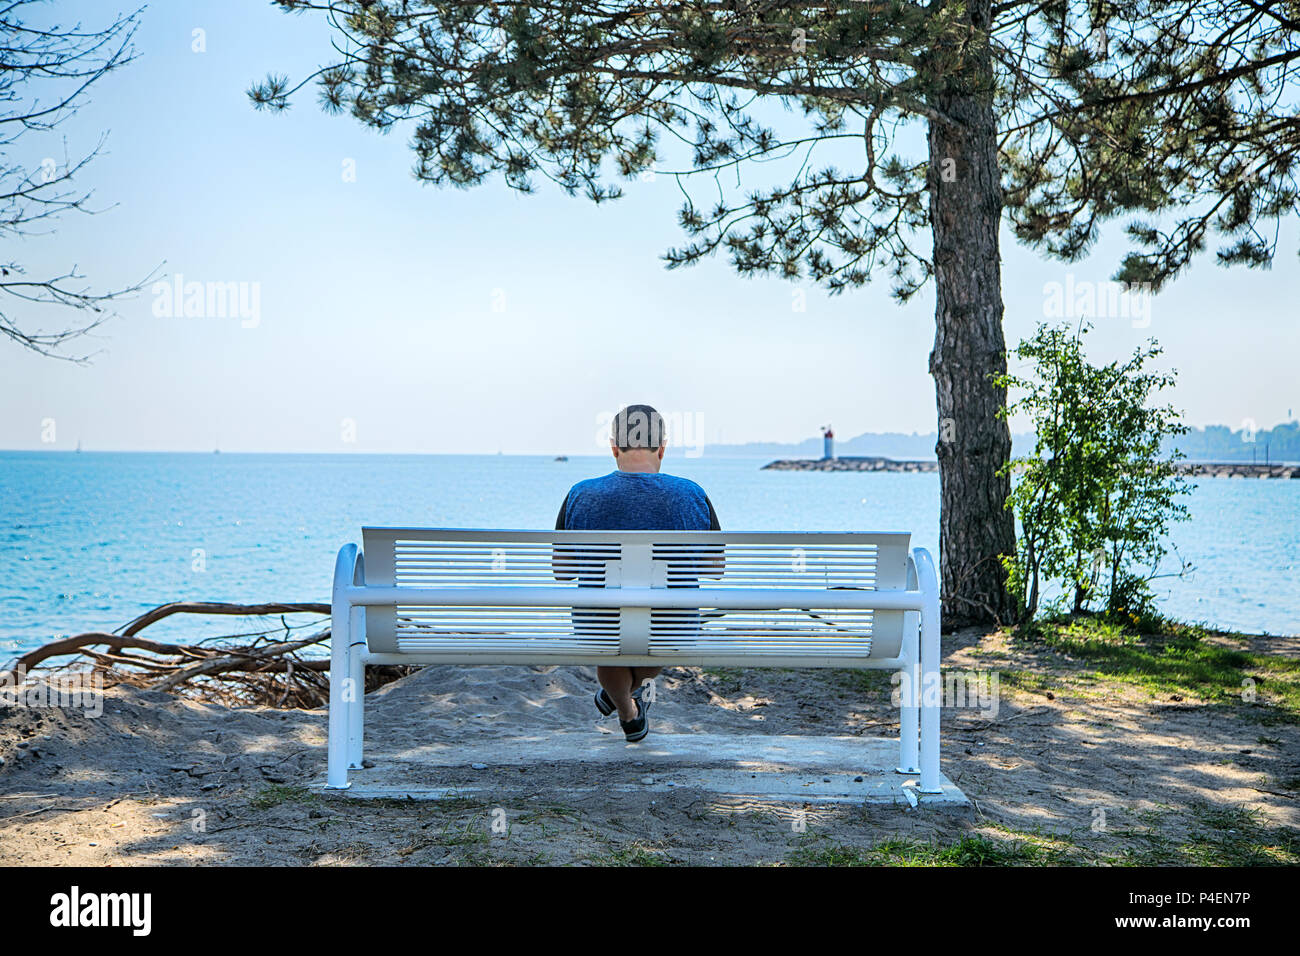 Man Sitting On A Bench By Lake Ontario Toronto Ontario Canada